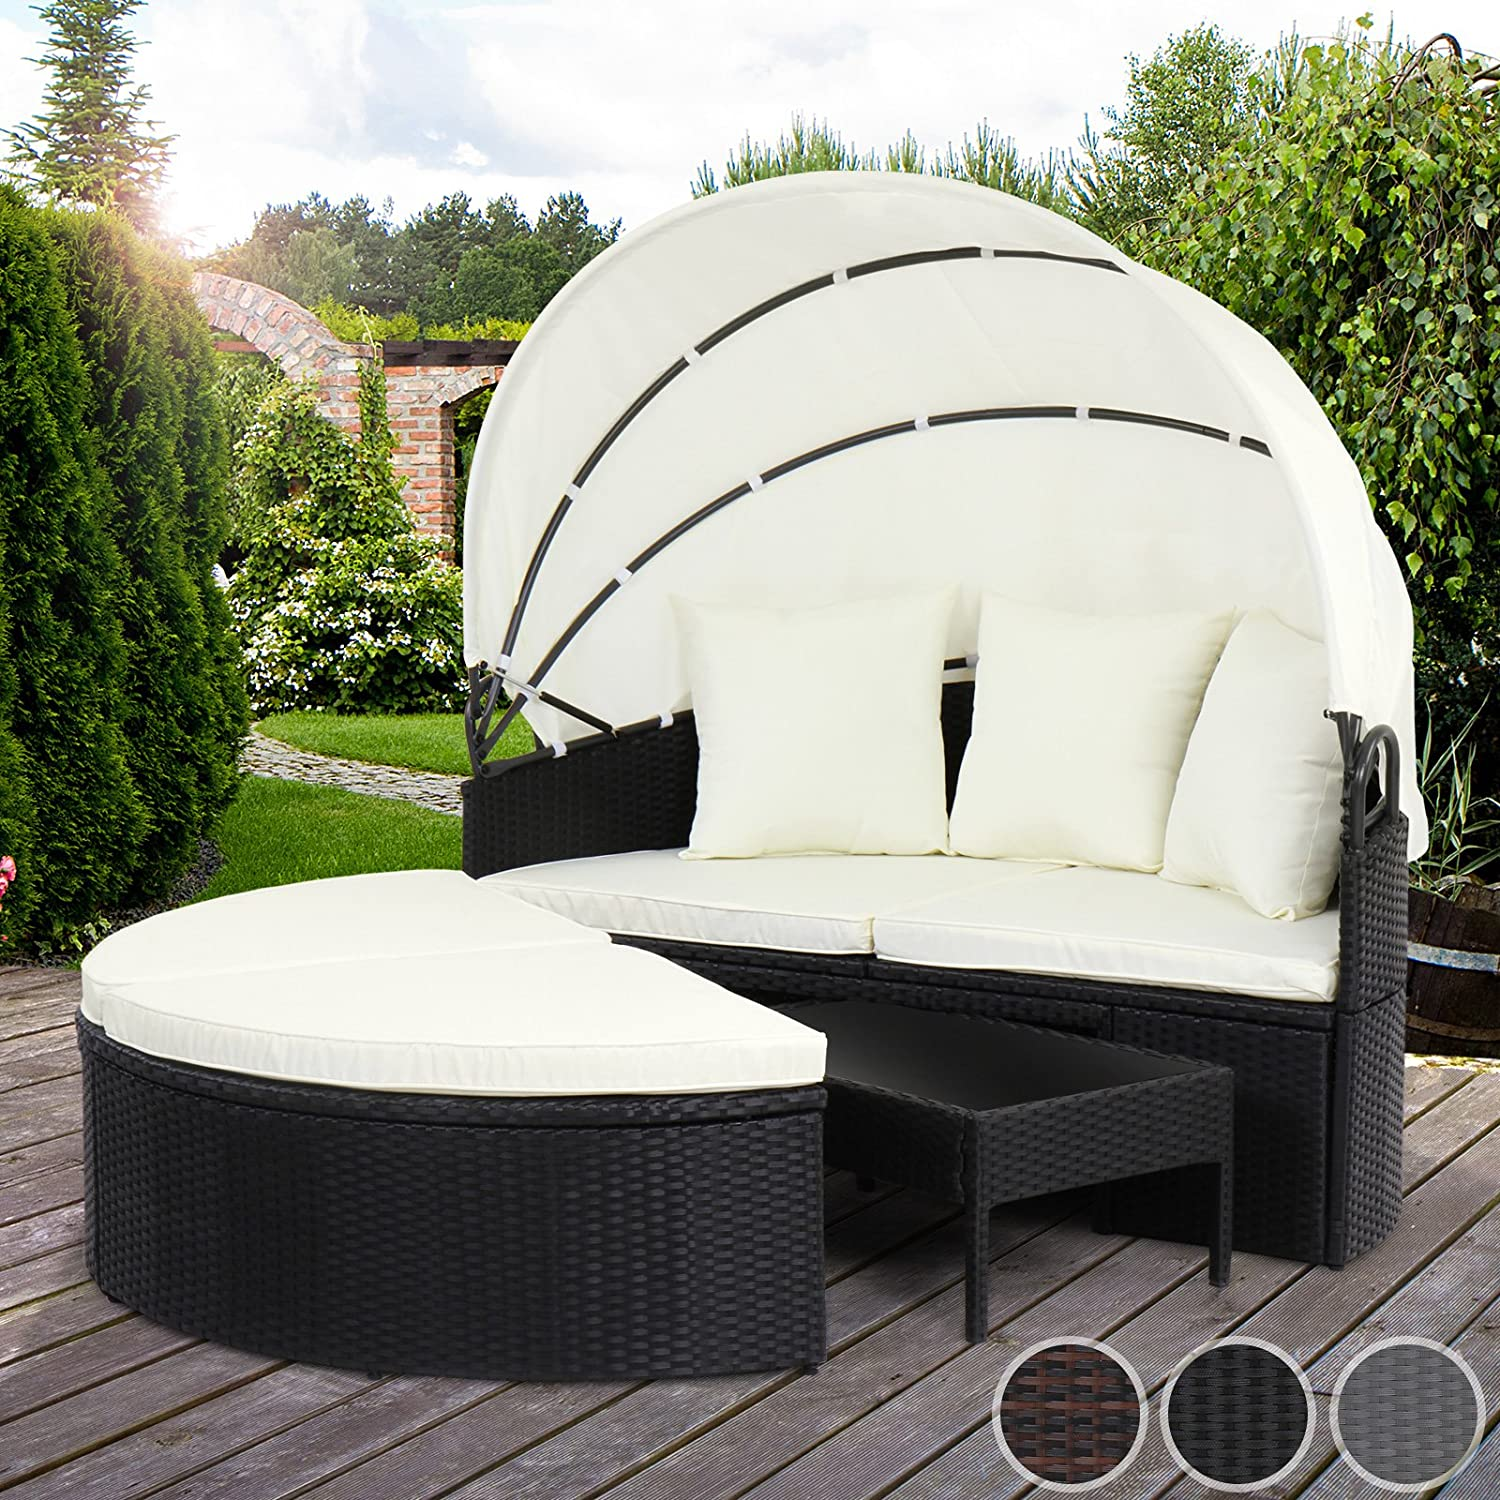 miadomodo polyrattan sonneninsel sonnenliege lounge. Black Bedroom Furniture Sets. Home Design Ideas